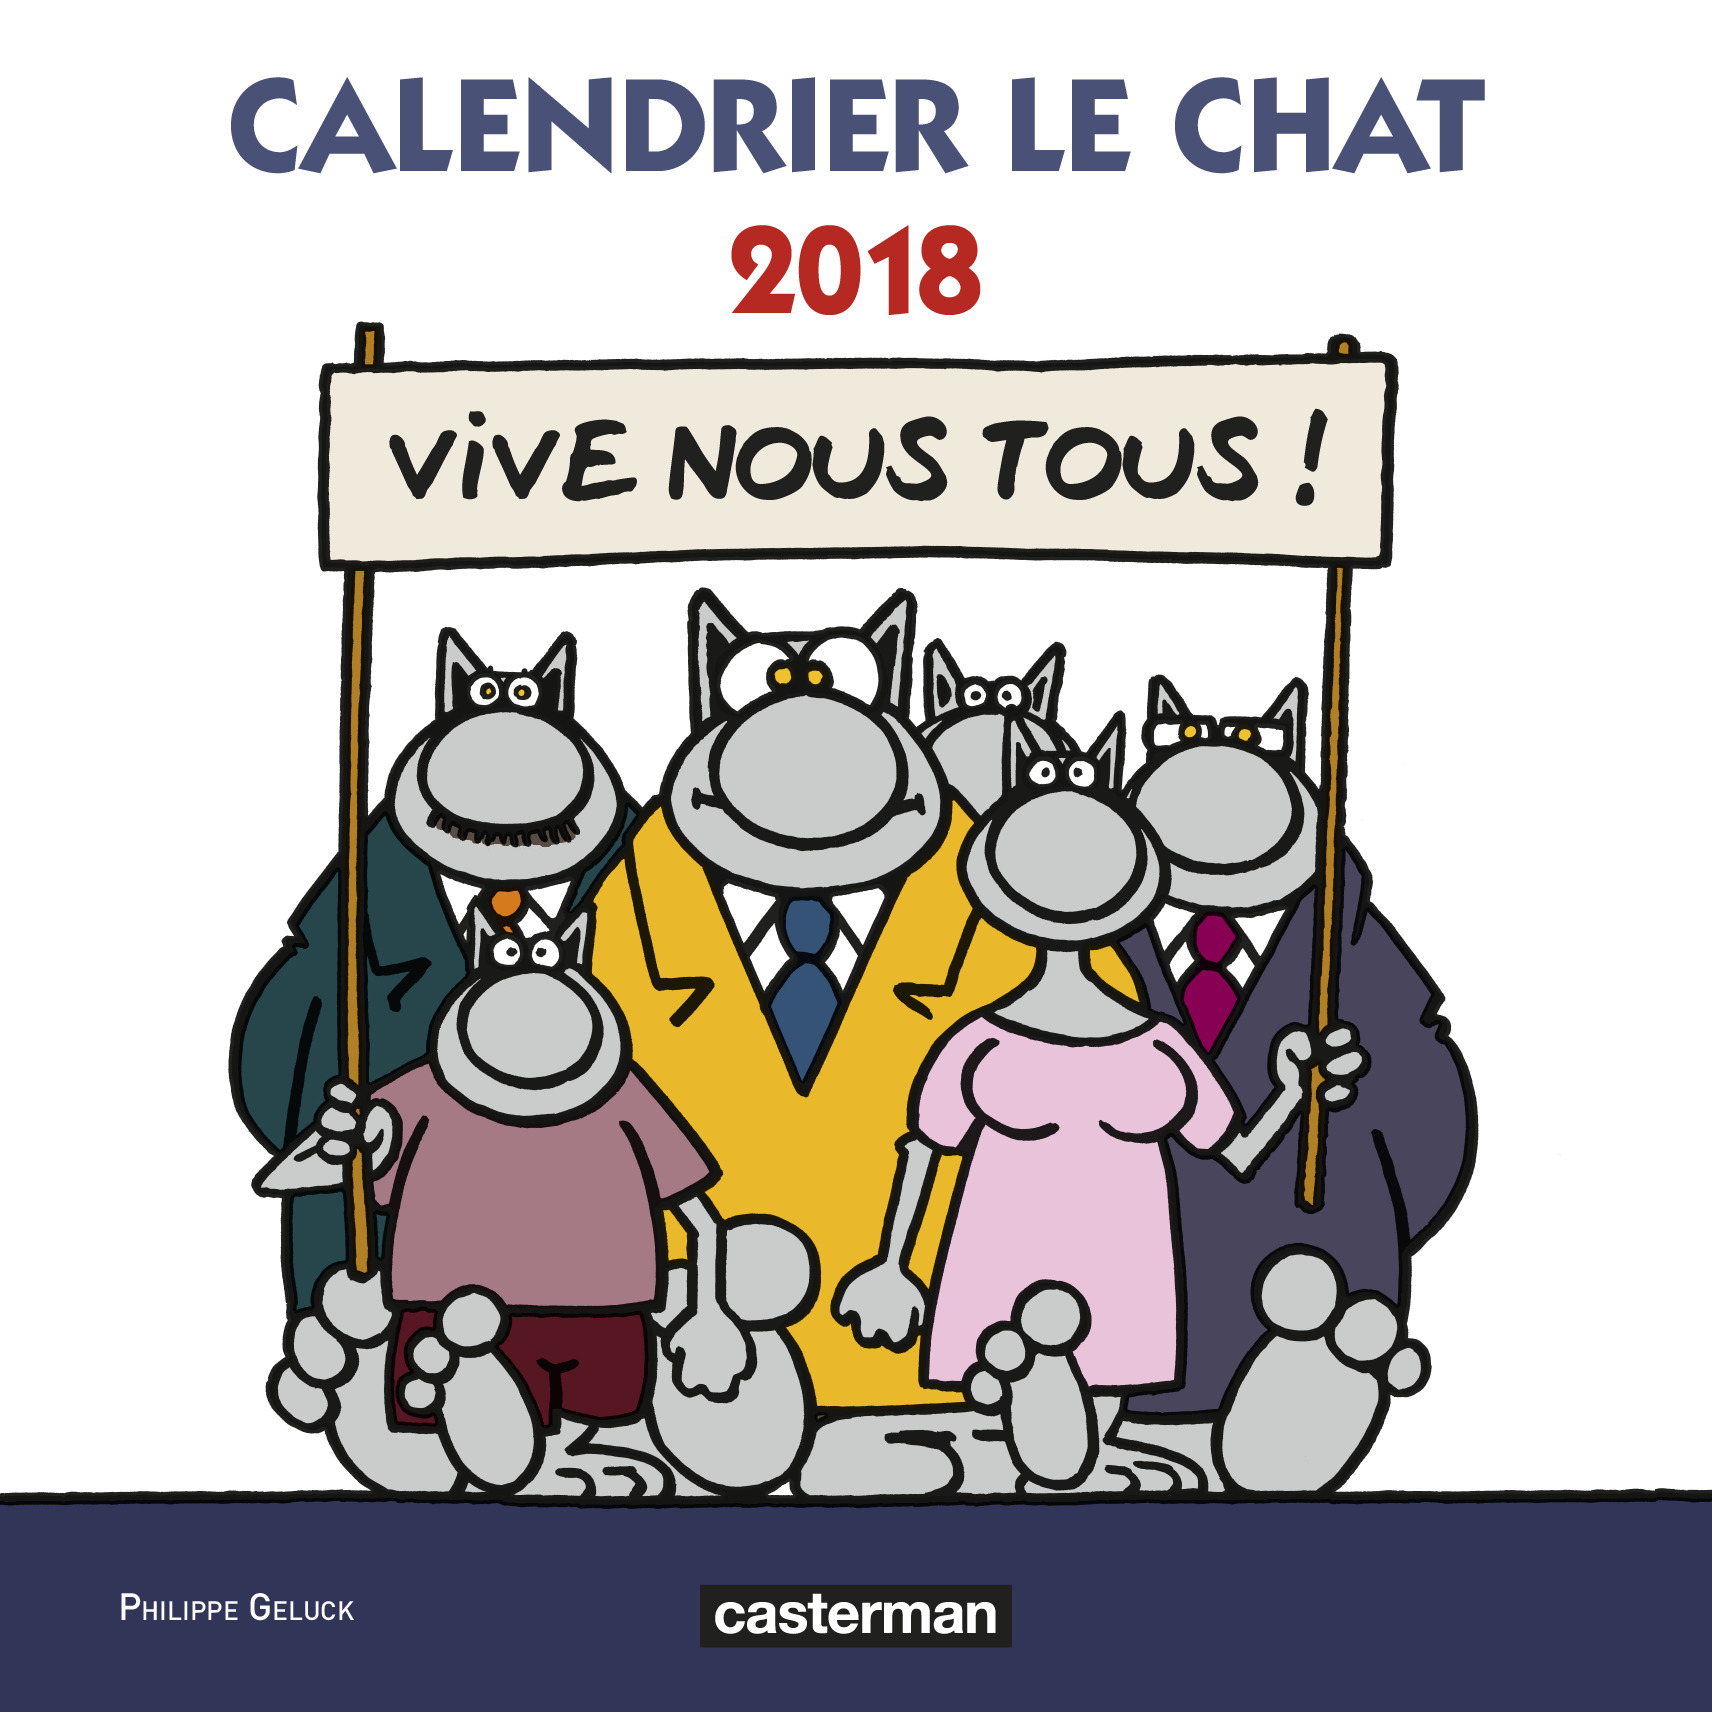 CALENDRIER  LE CHAT 2018